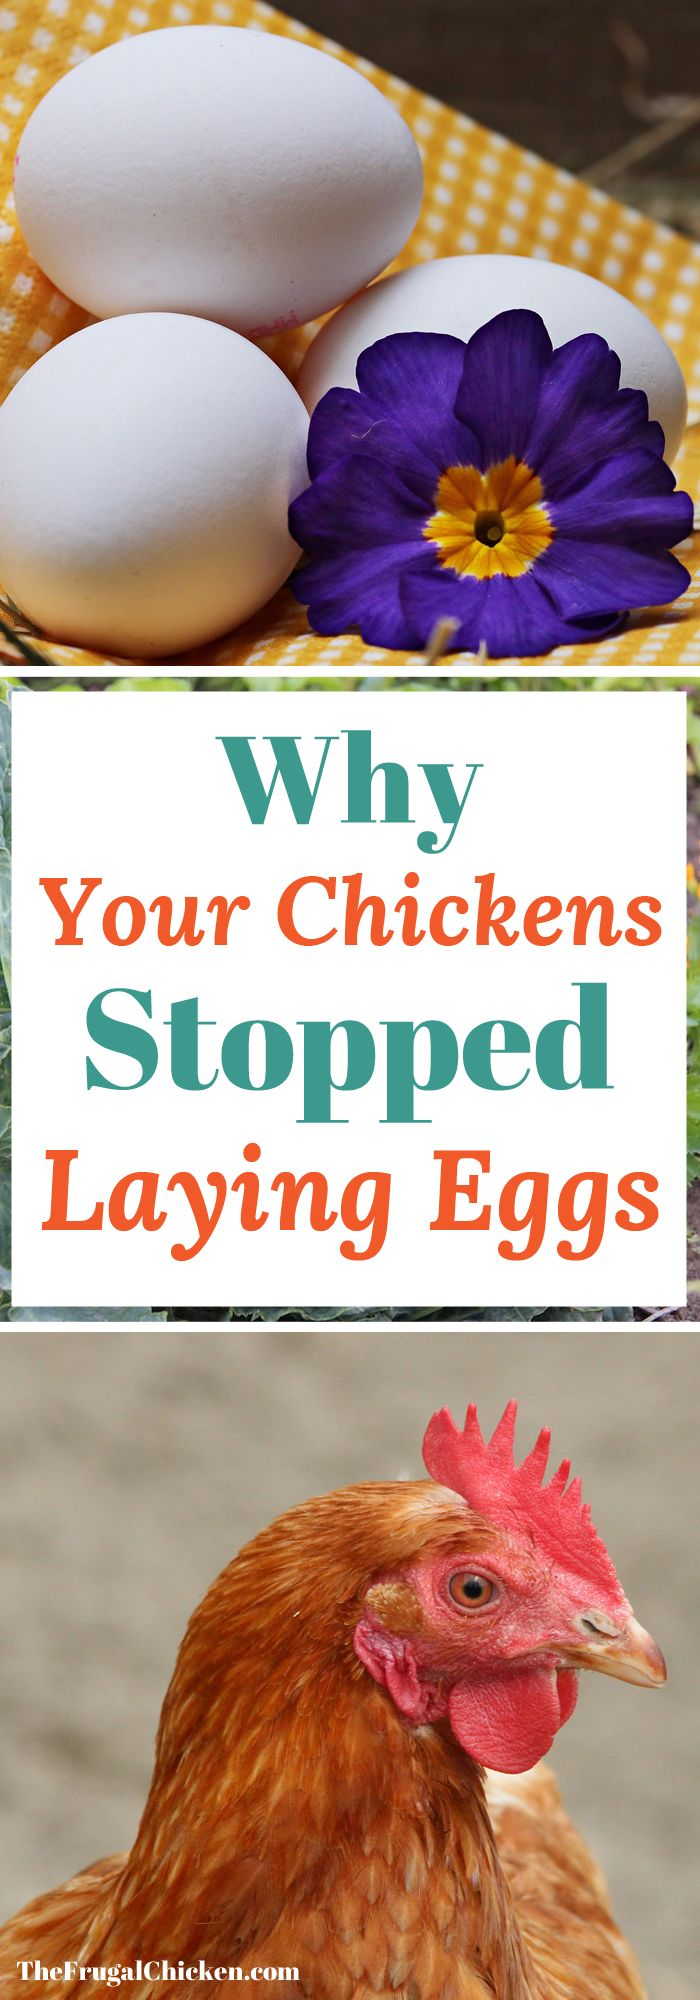 Why Your Chickens Stopped Laying Eggs: 10+ Troubleshooting ...